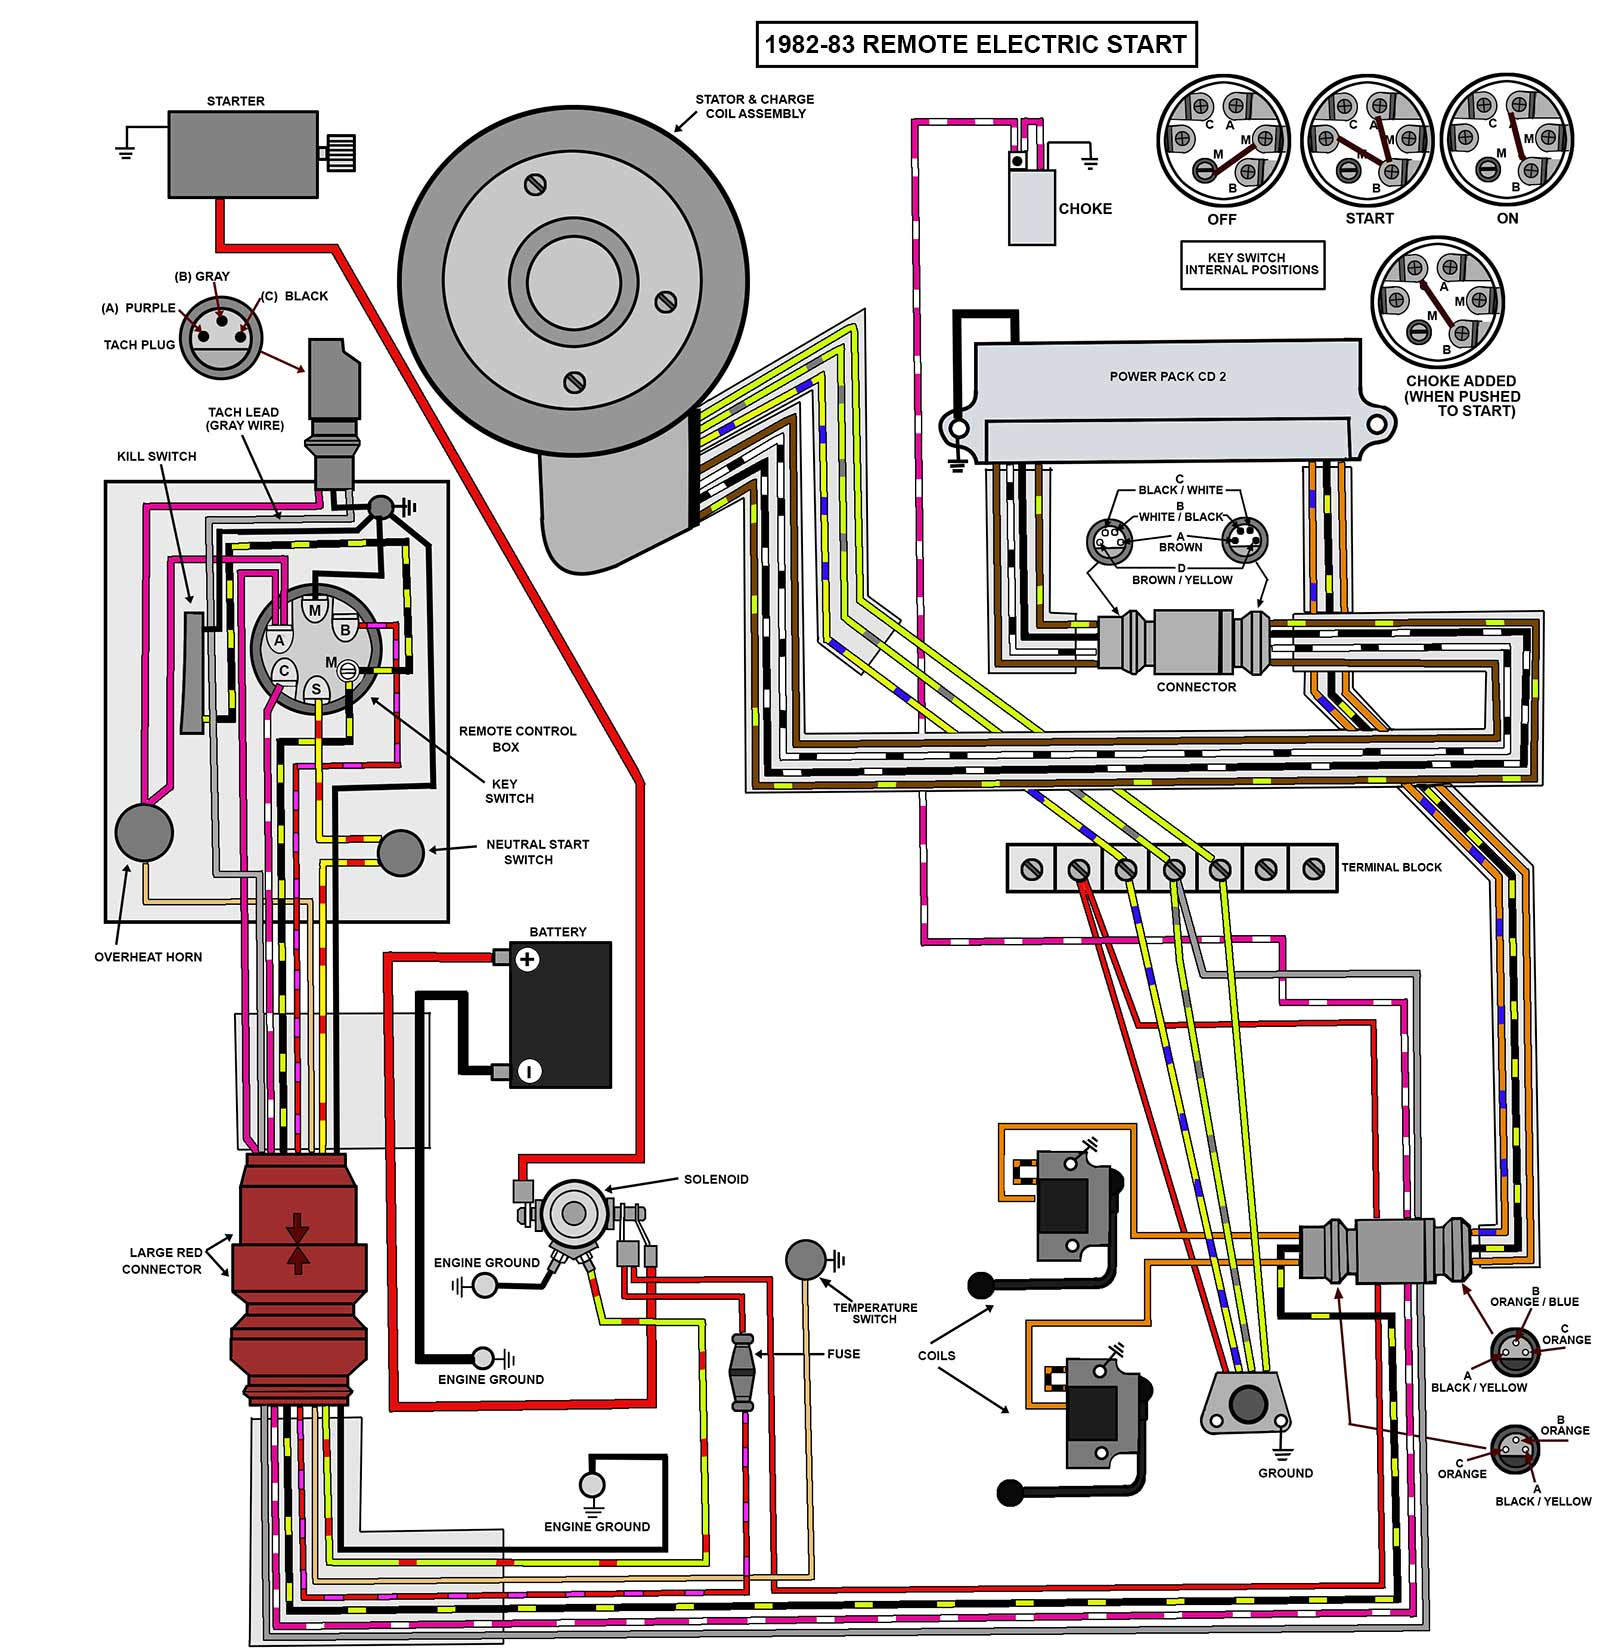 25_35_82 83_elec remote hp wiring diagram wiring harness diagram \u2022 wiring diagrams j  at readyjetset.co